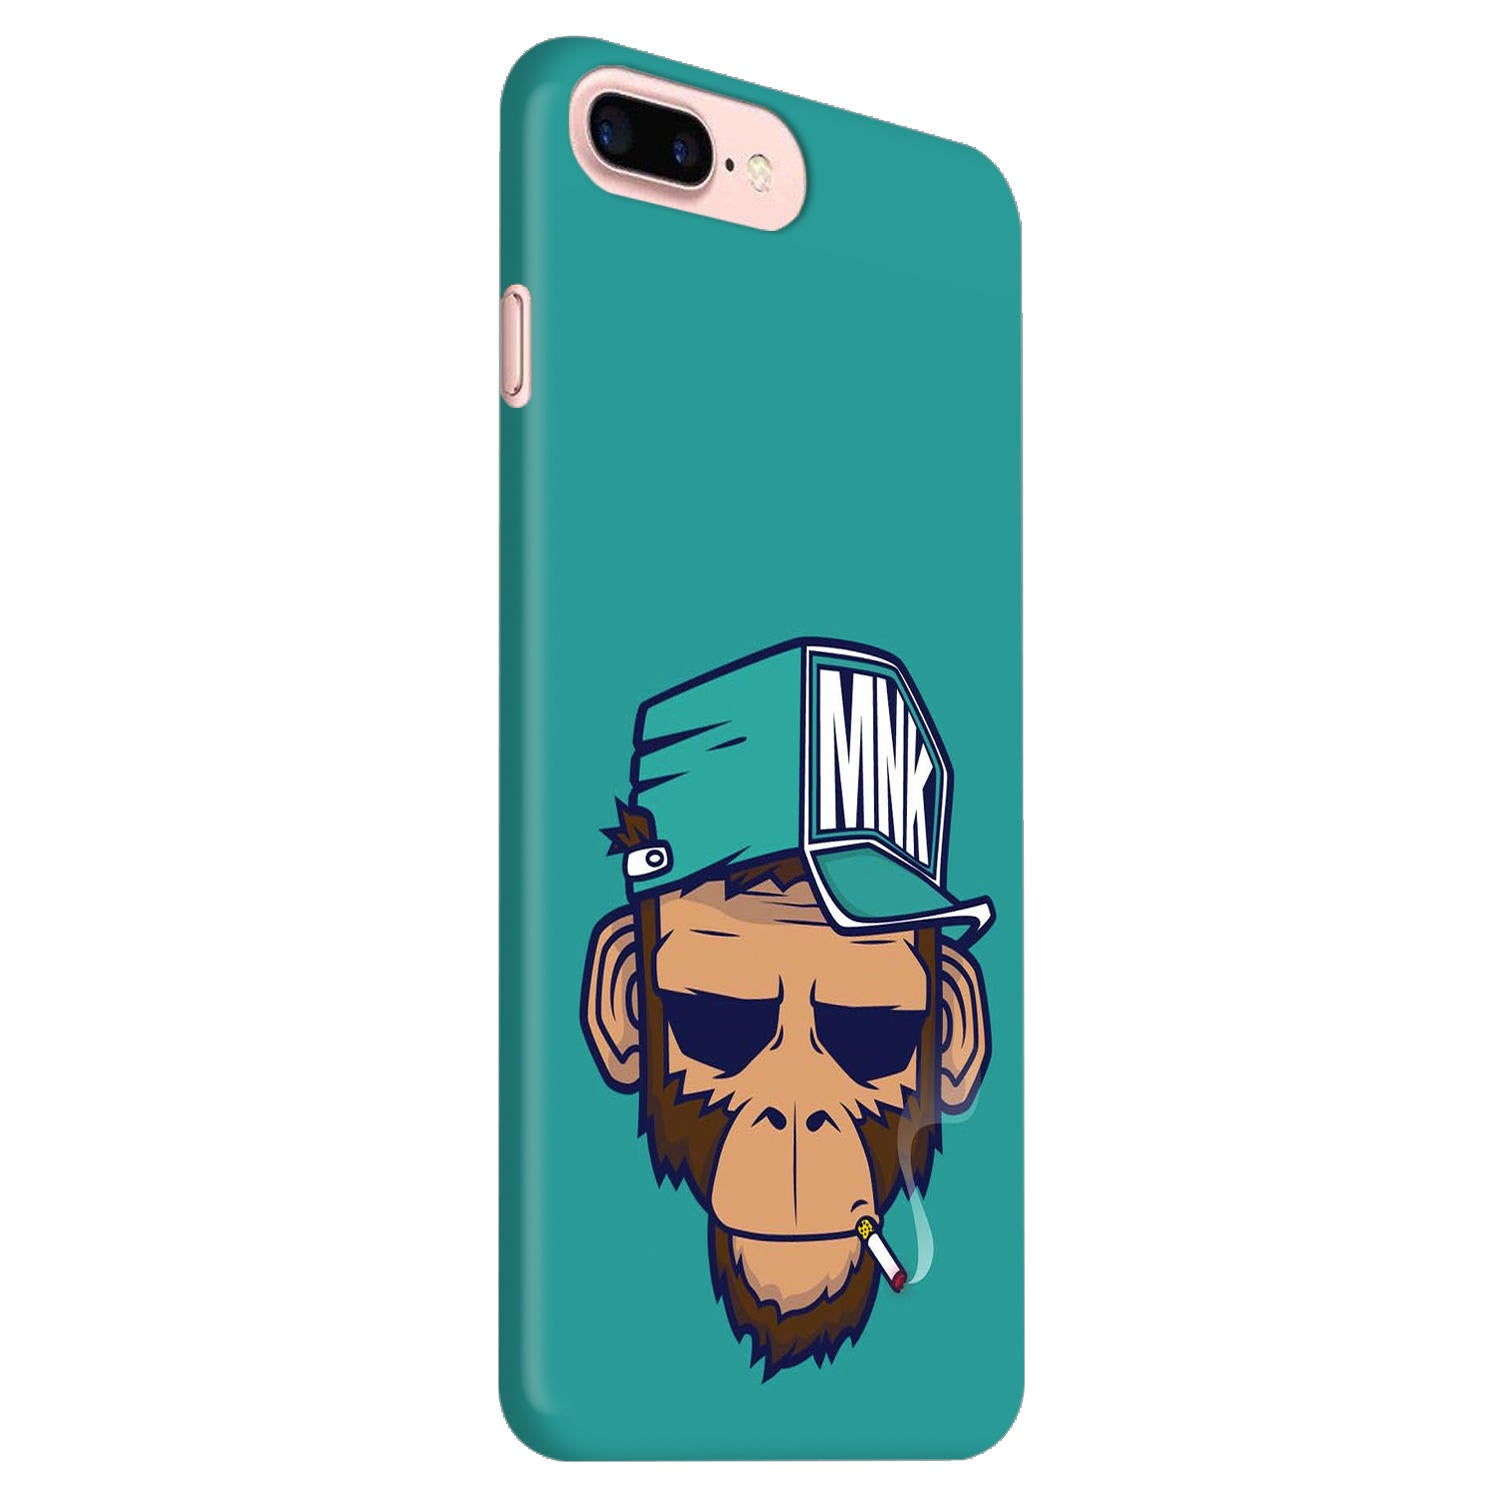 Monkey Swag iPhone 7 Plus Mobile Cover Case - MADANYU